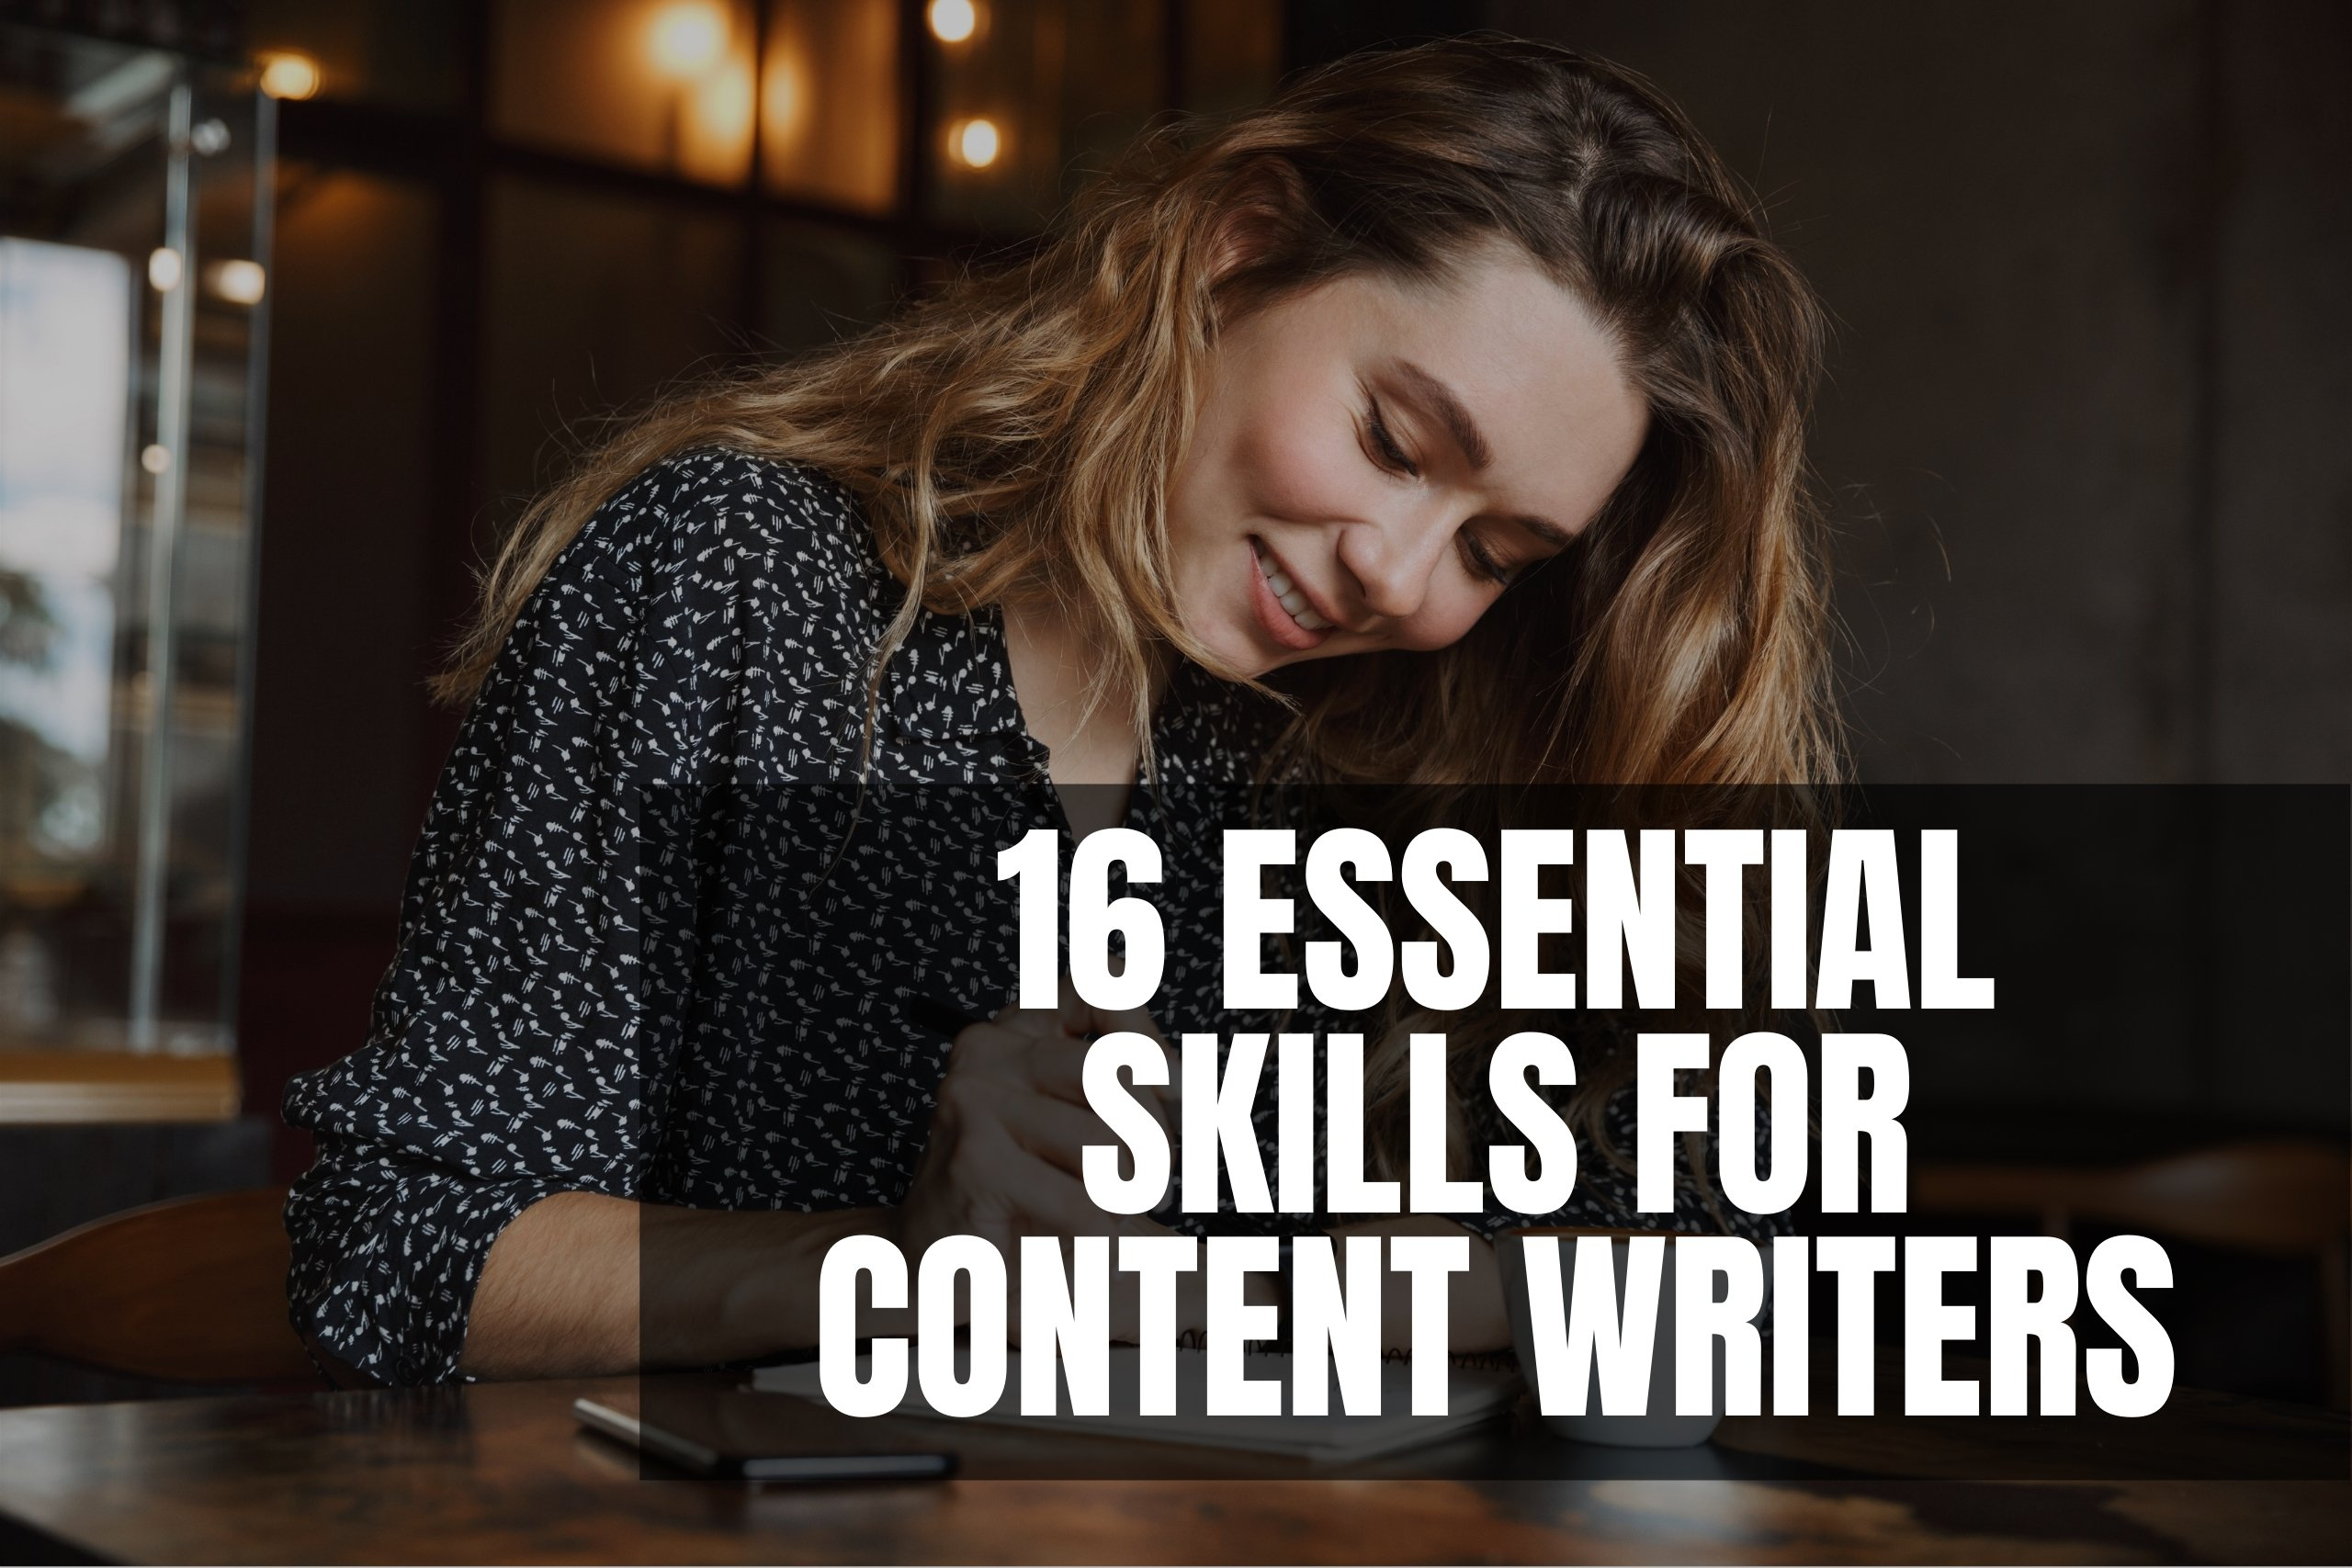 16 essential skills for successful content writers matthew myre